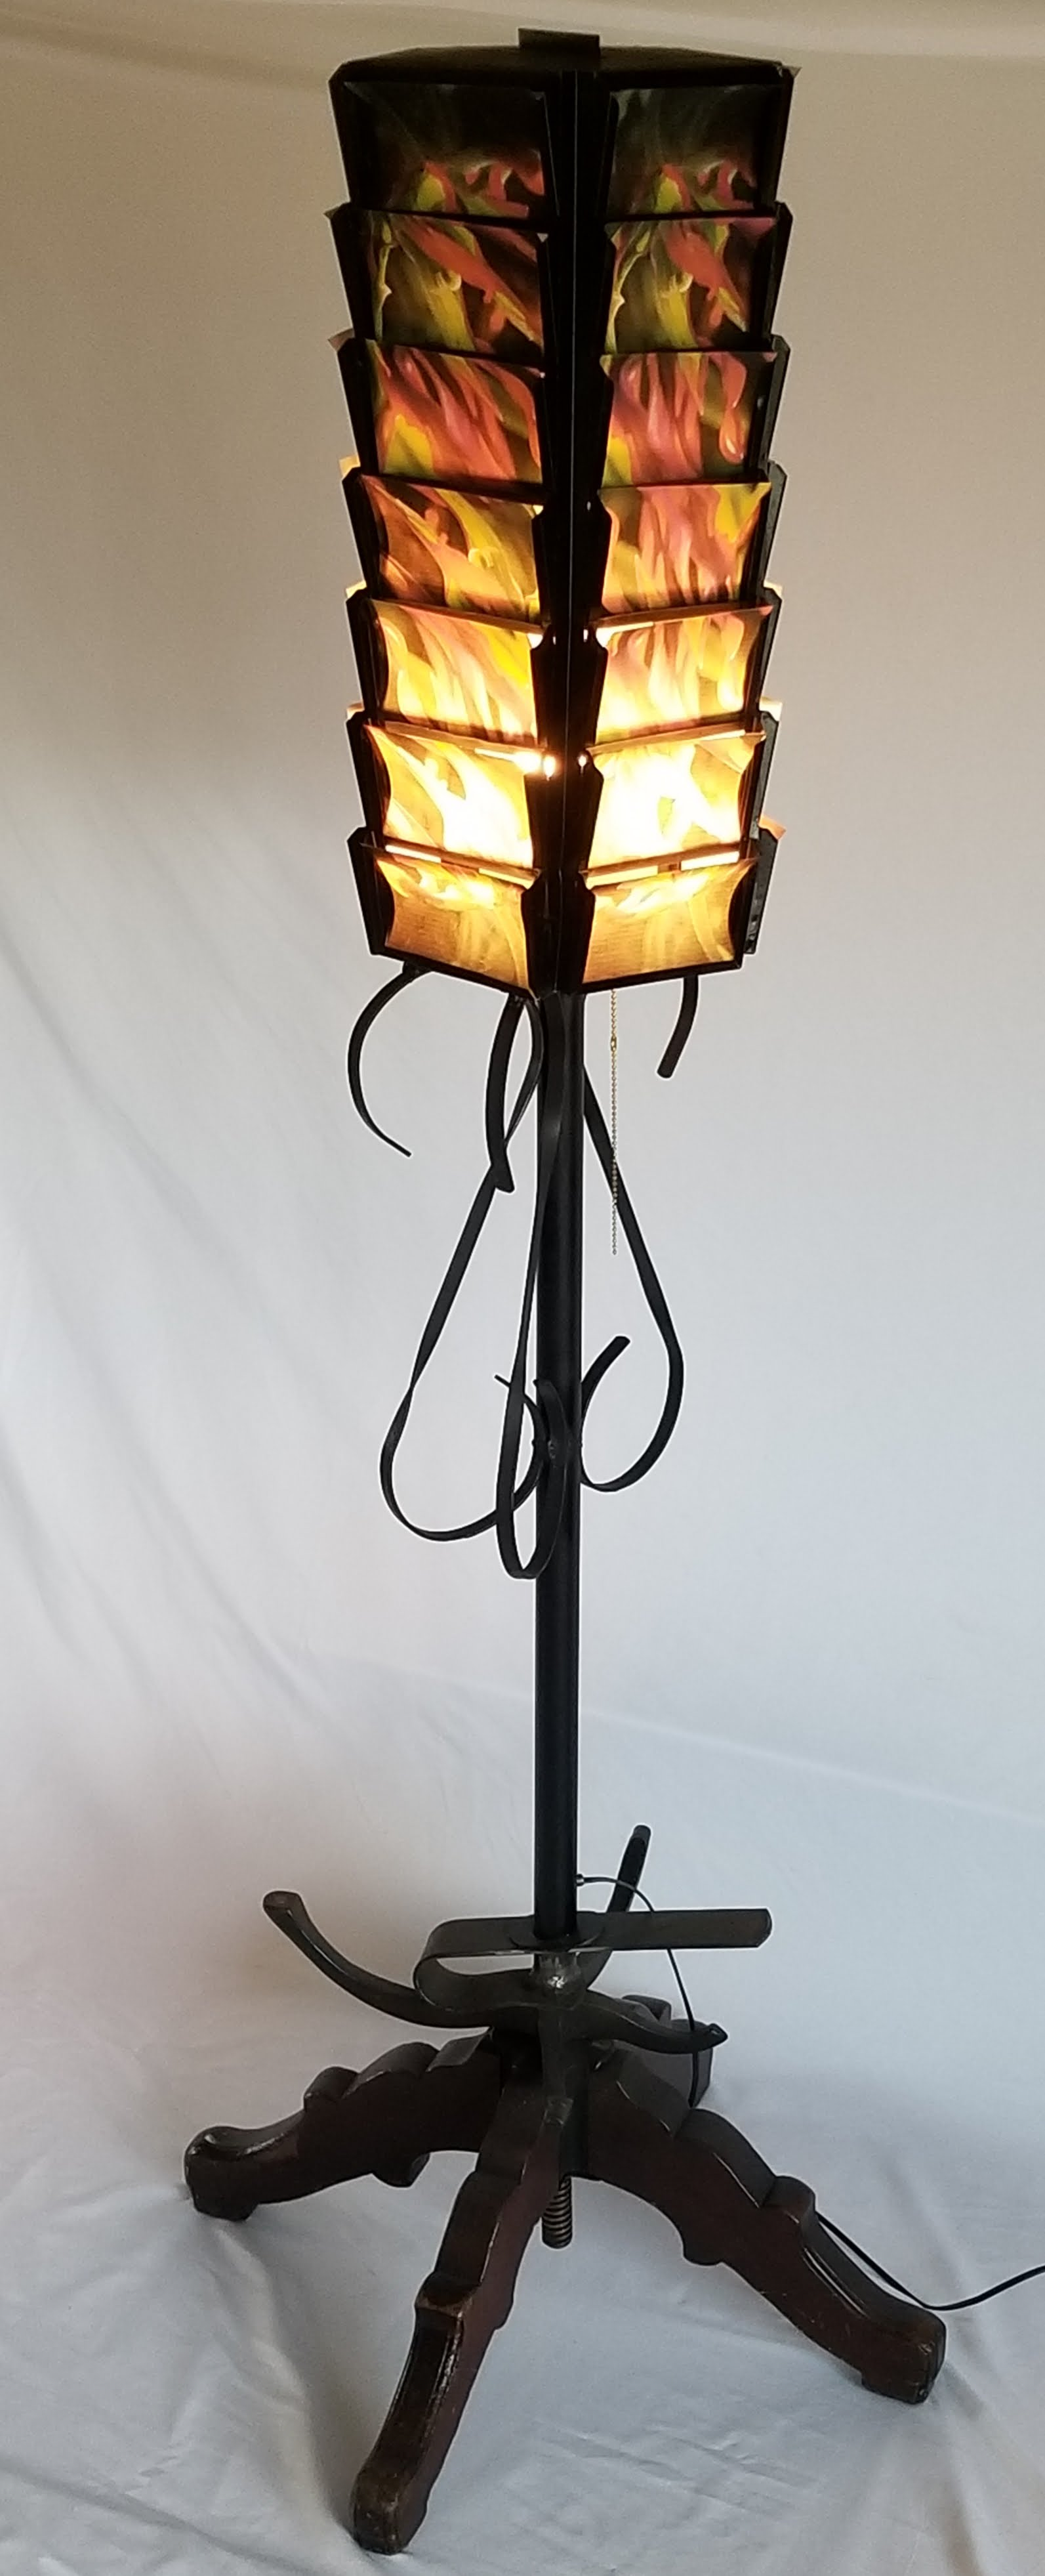 Postcard Floor Lamp